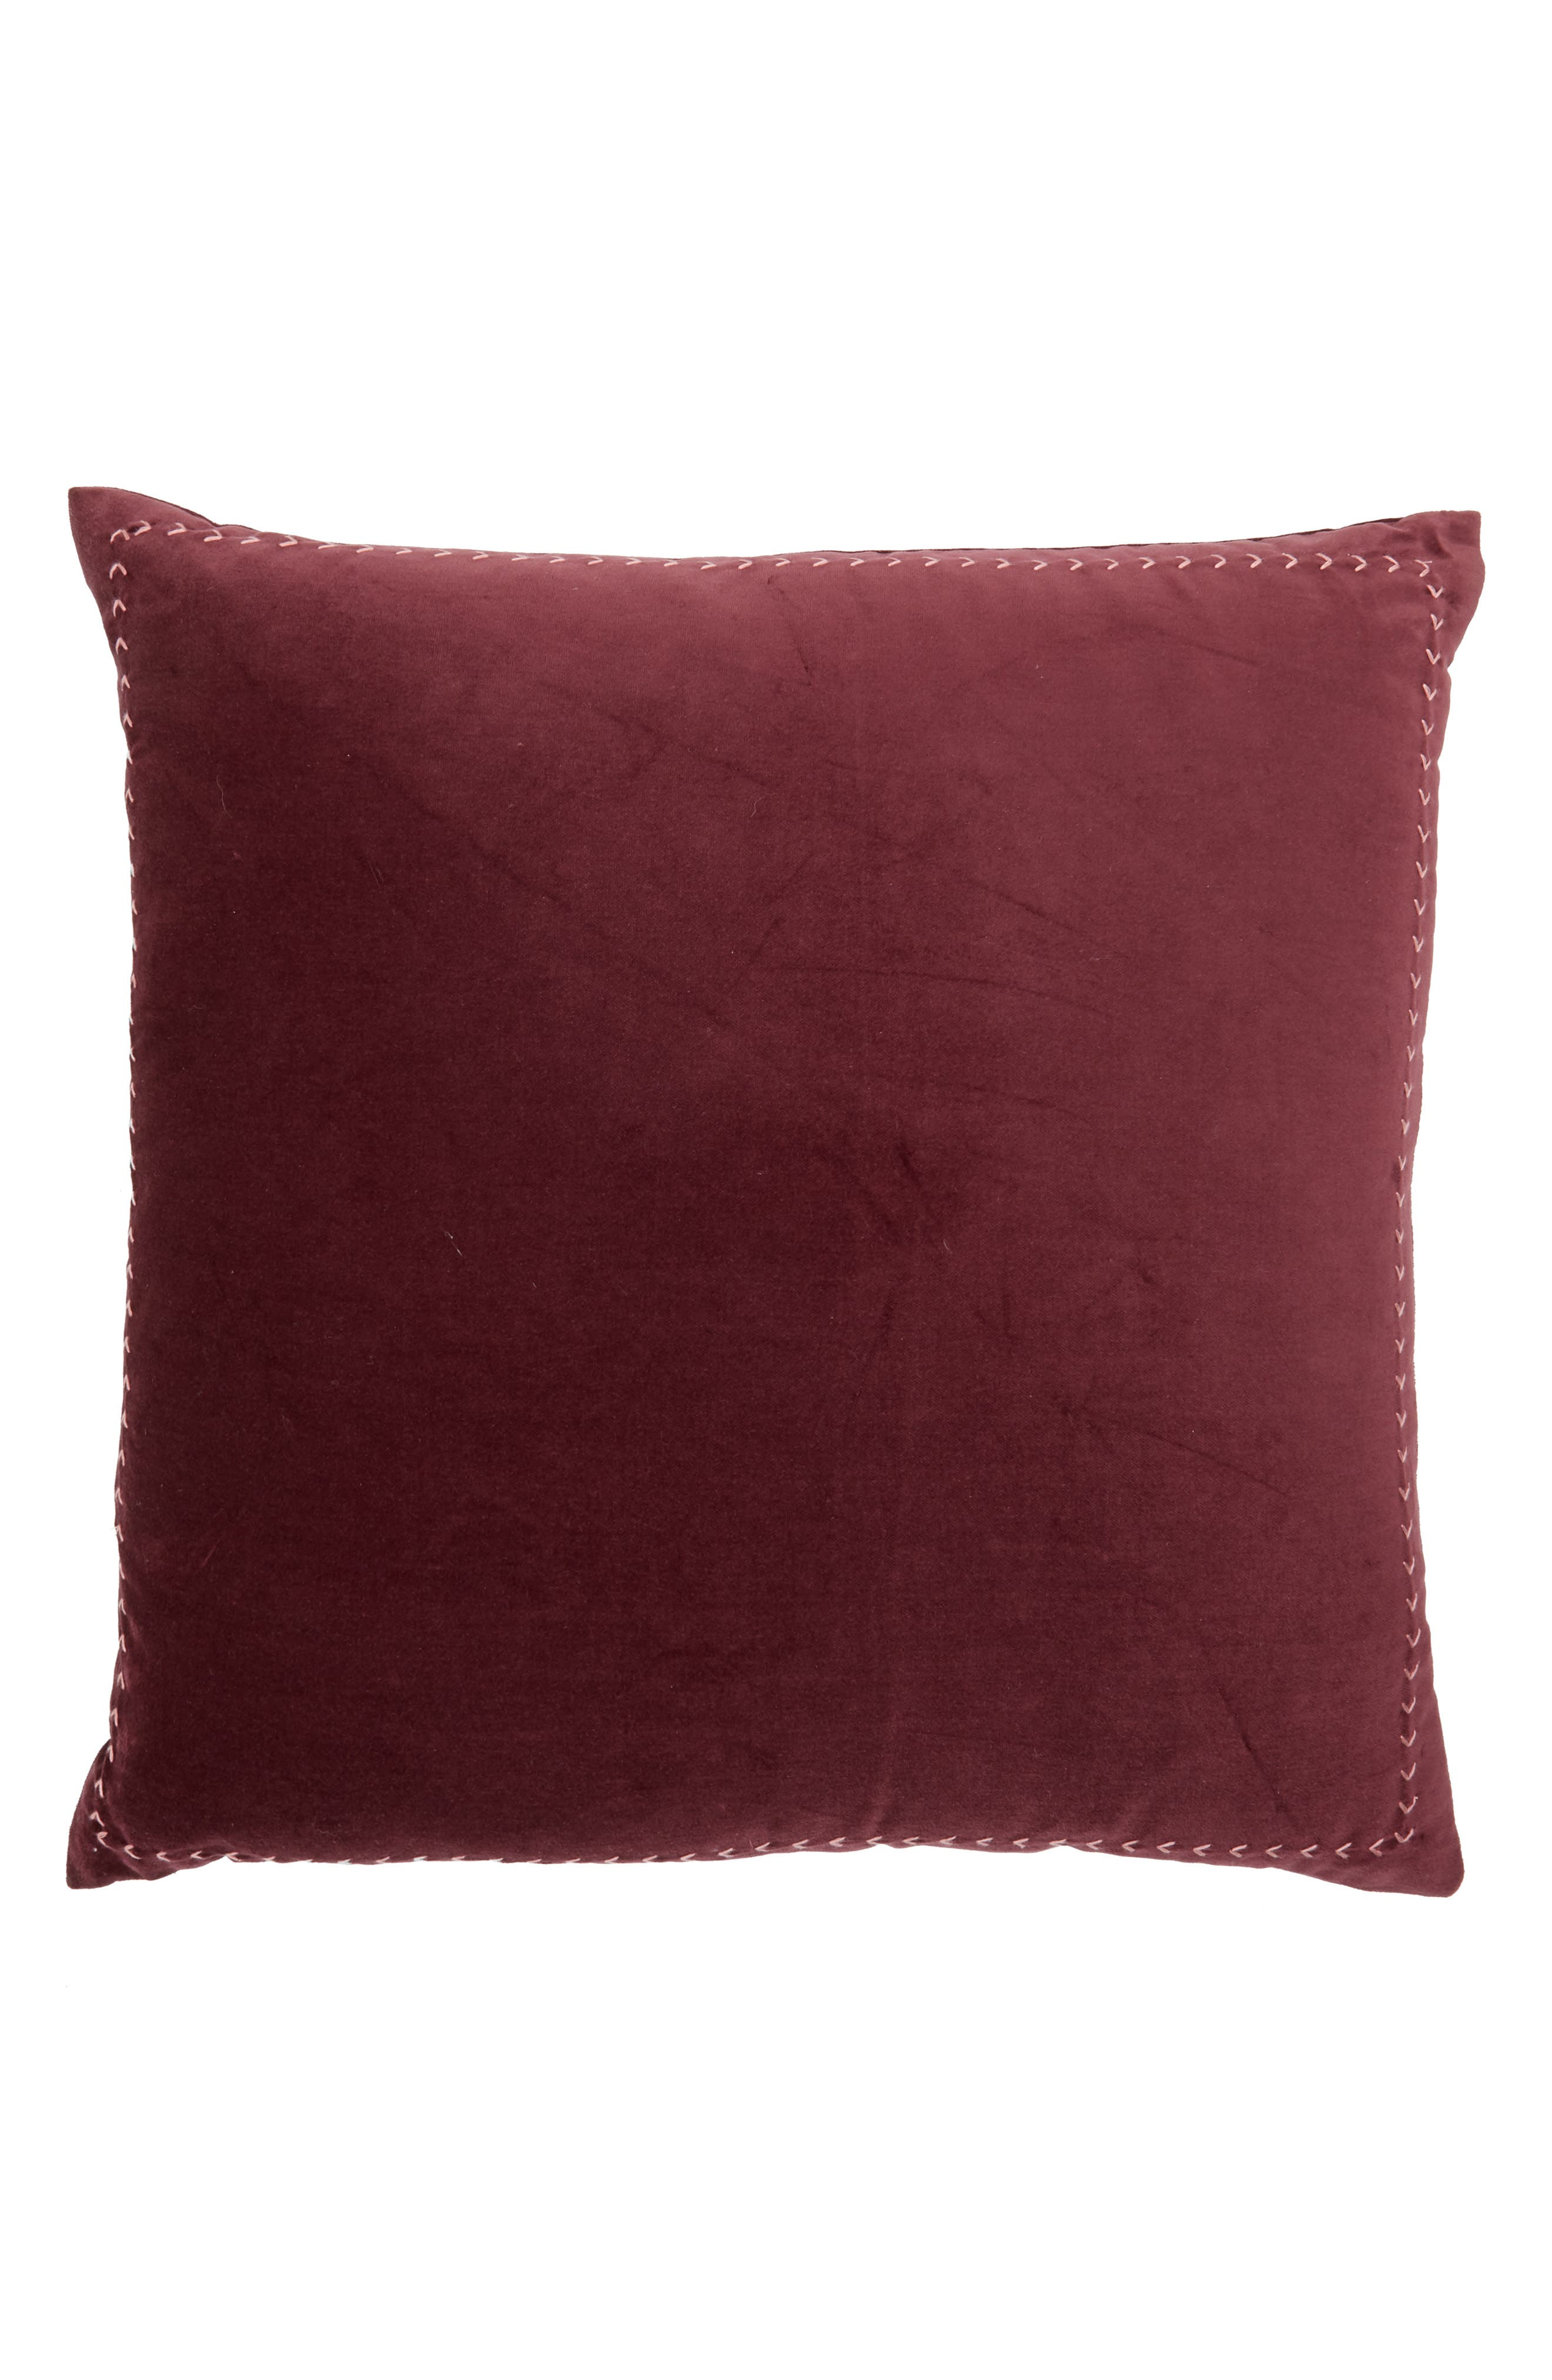 Velvet Accent Pillow,                             Main thumbnail 2, color,